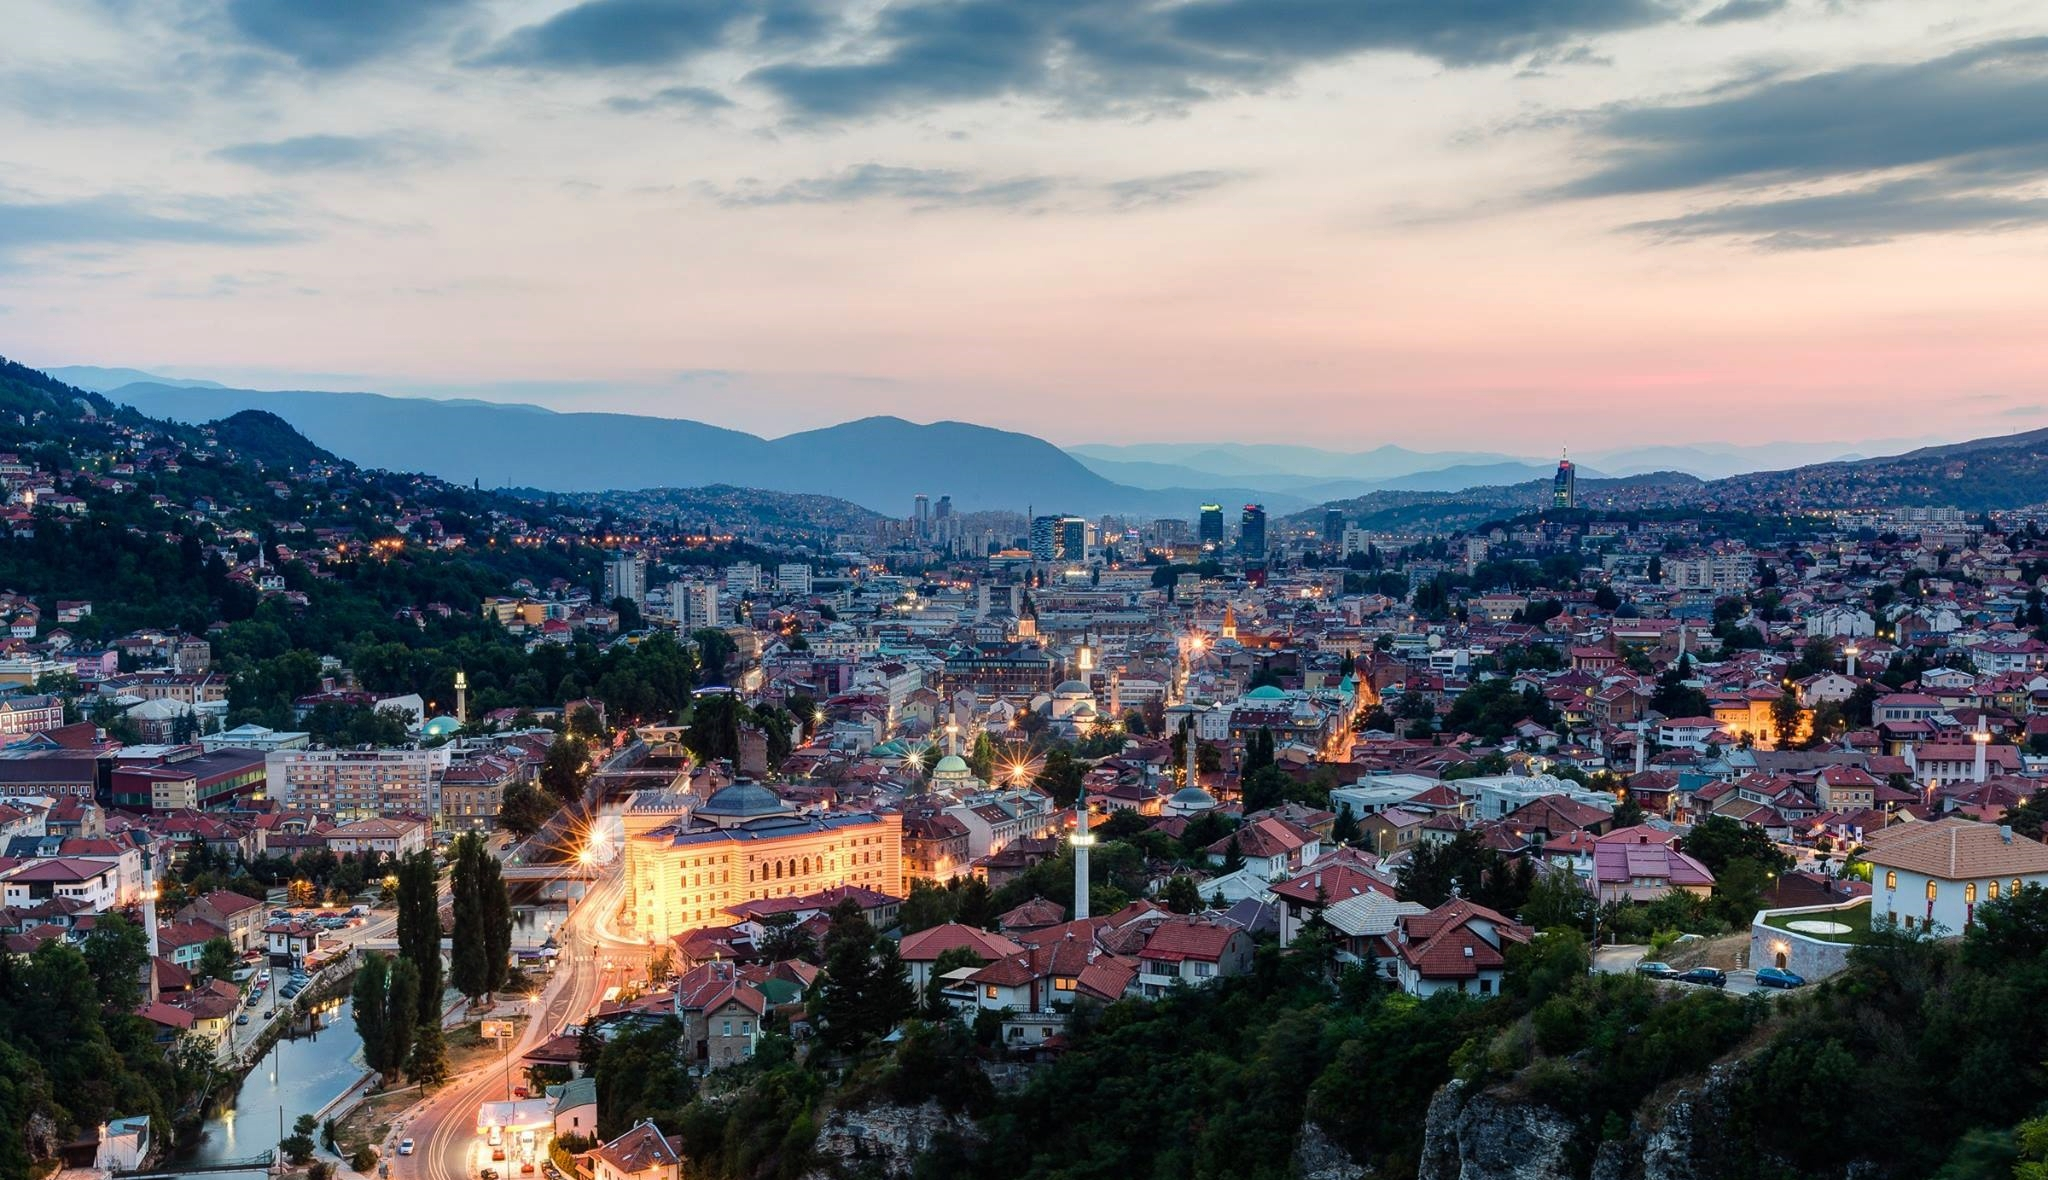 All seasons tour from Dubrovnik to discover Bosnia in 7 days. Meet Sarajevo, Mostar, Trebinje. Visit fortresses, monasteries, old towns and cave.